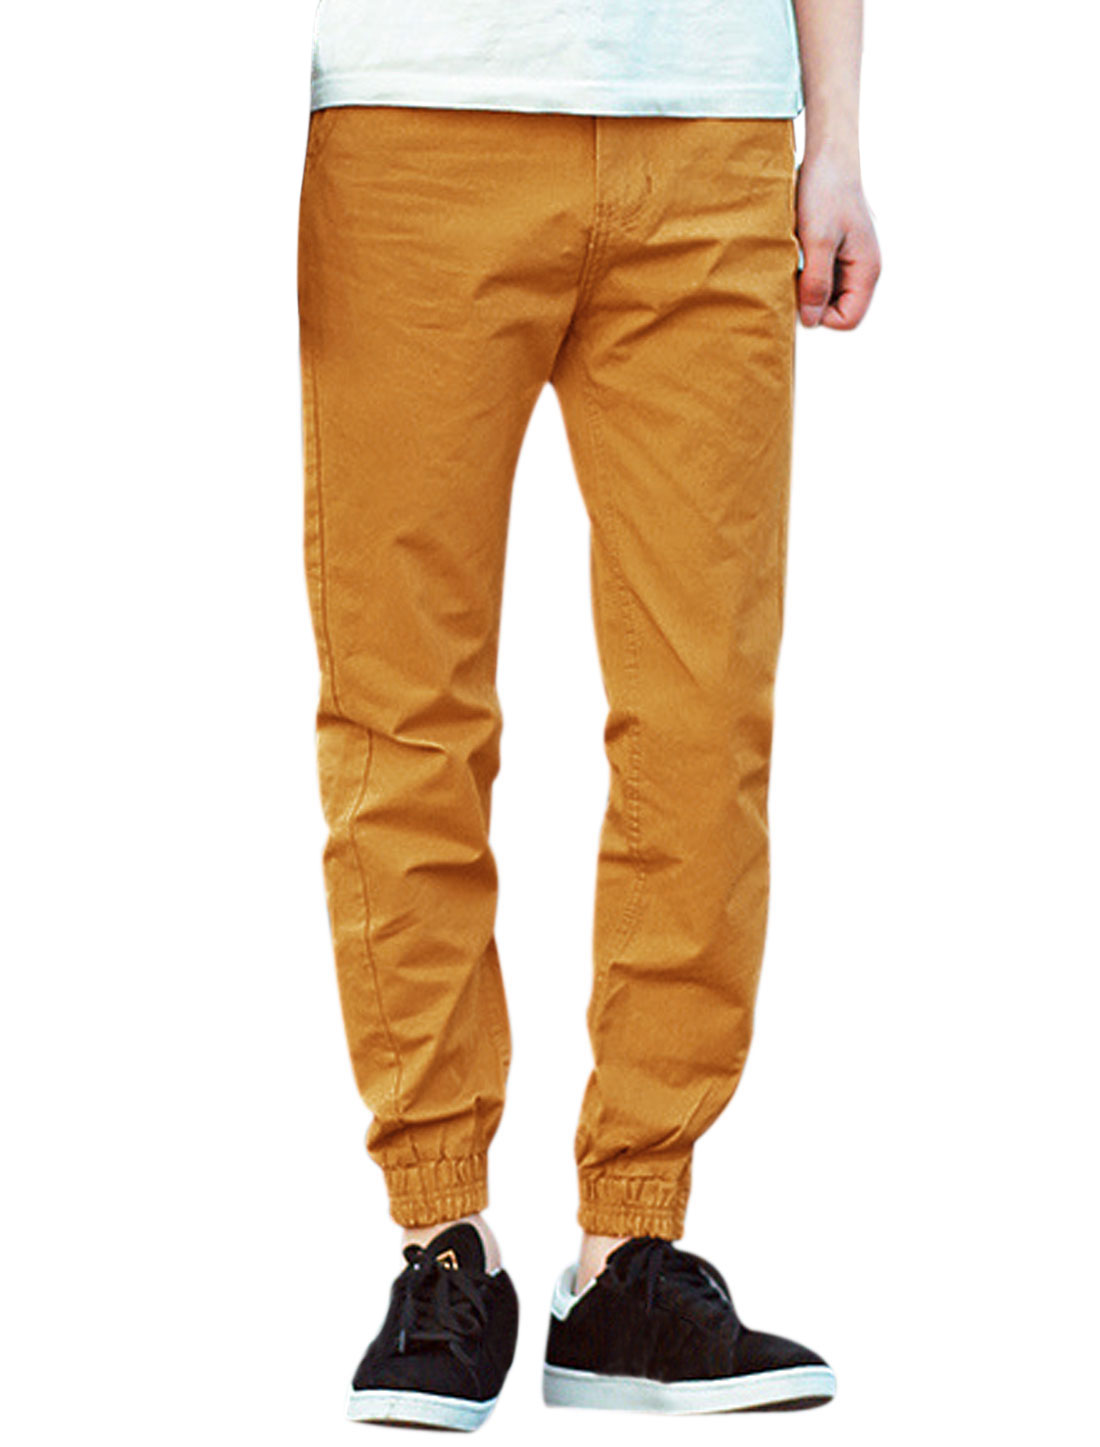 Men Elastic Thigh Cuffs Well-fitting Button Closed Casual Pants Orange W32